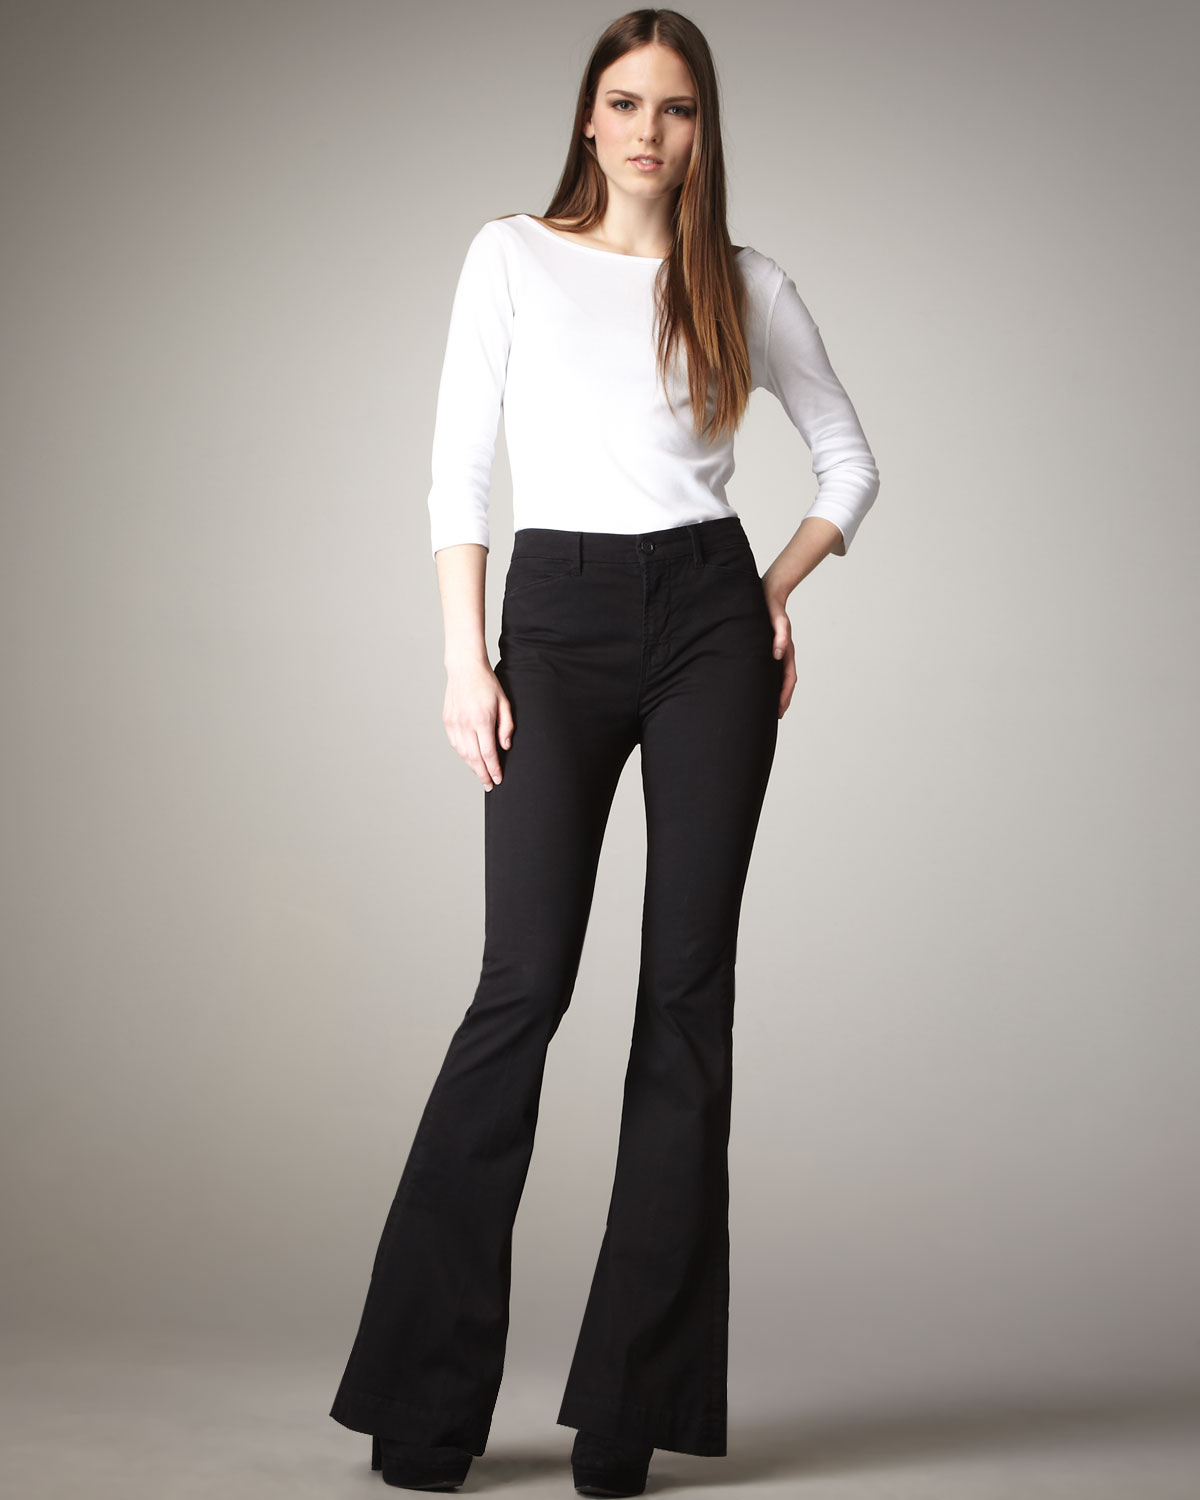 92d63b7579ce2 Lyst - J Brand Isabella High-rise Flared Trousers in Black